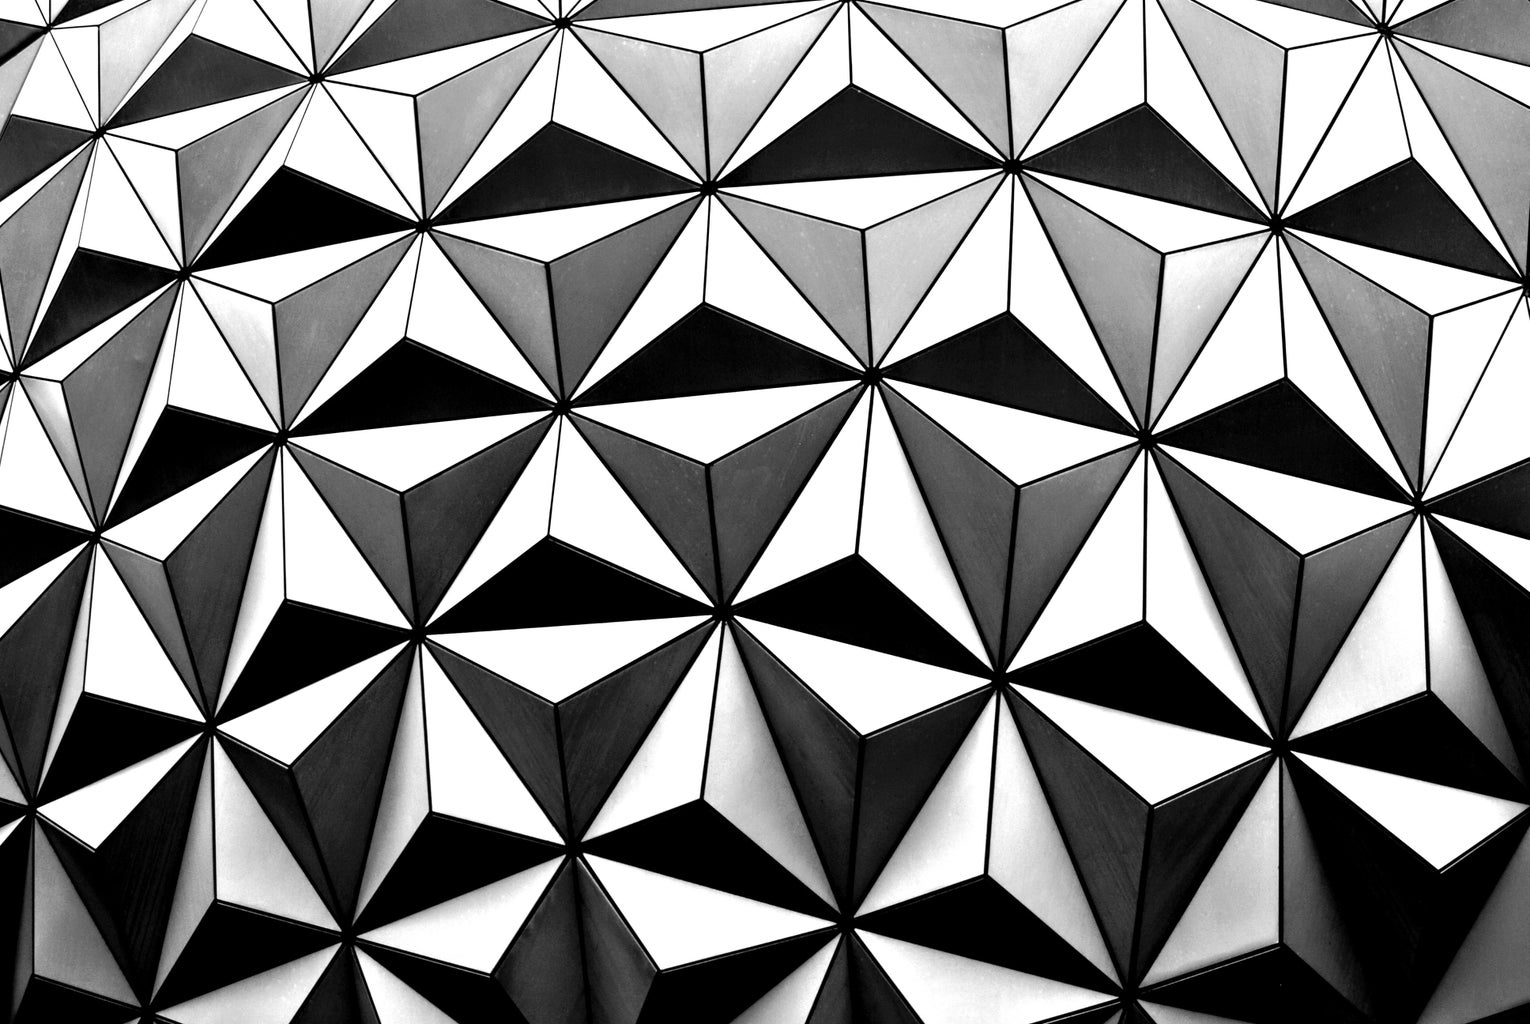 close up image of the Epcot Ball in Disney